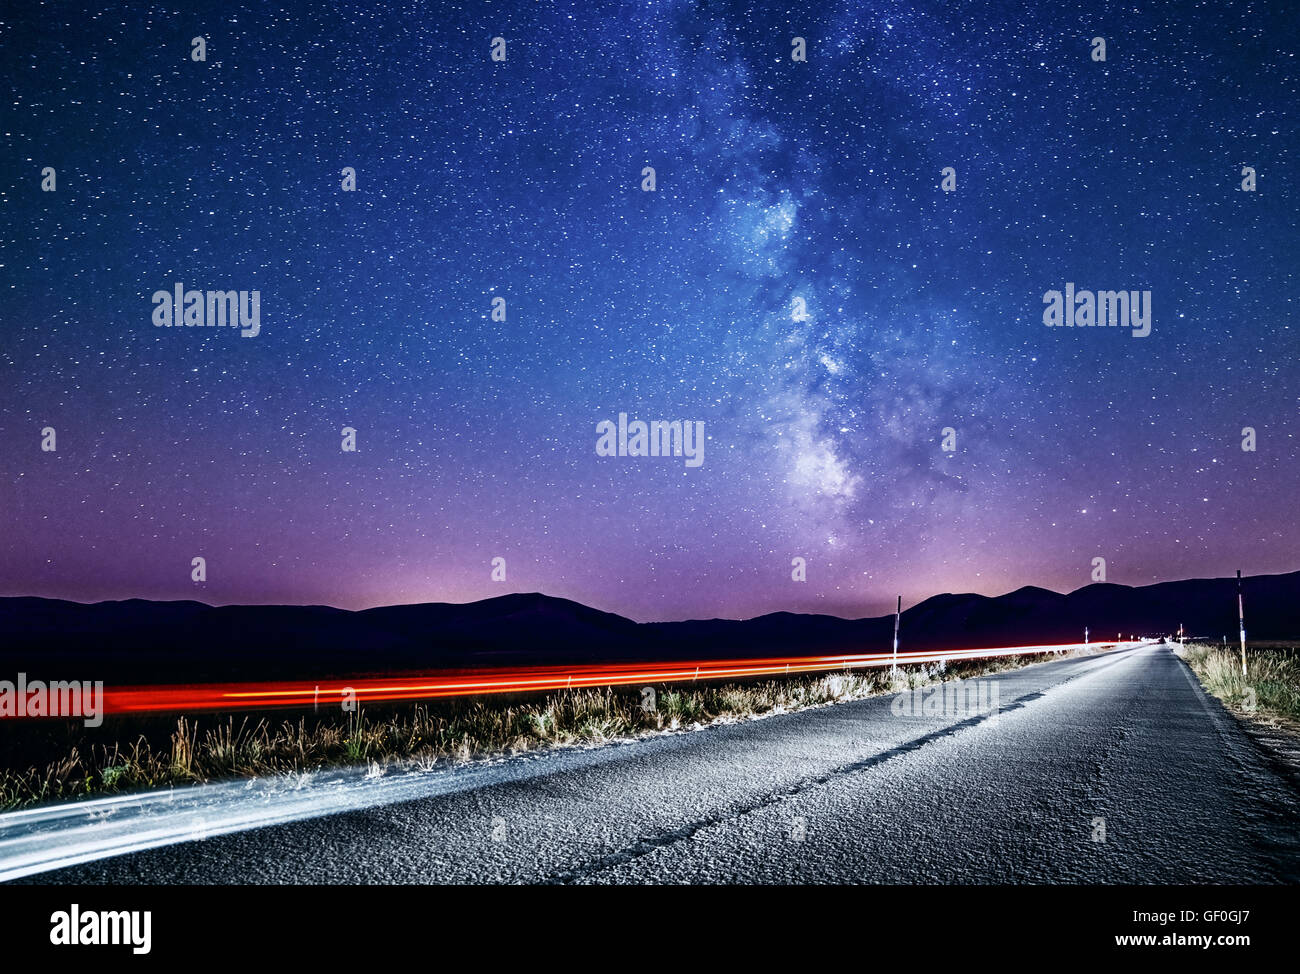 Night sky with milky way and stars. Night road illuminated by car. Light trails - Stock Image